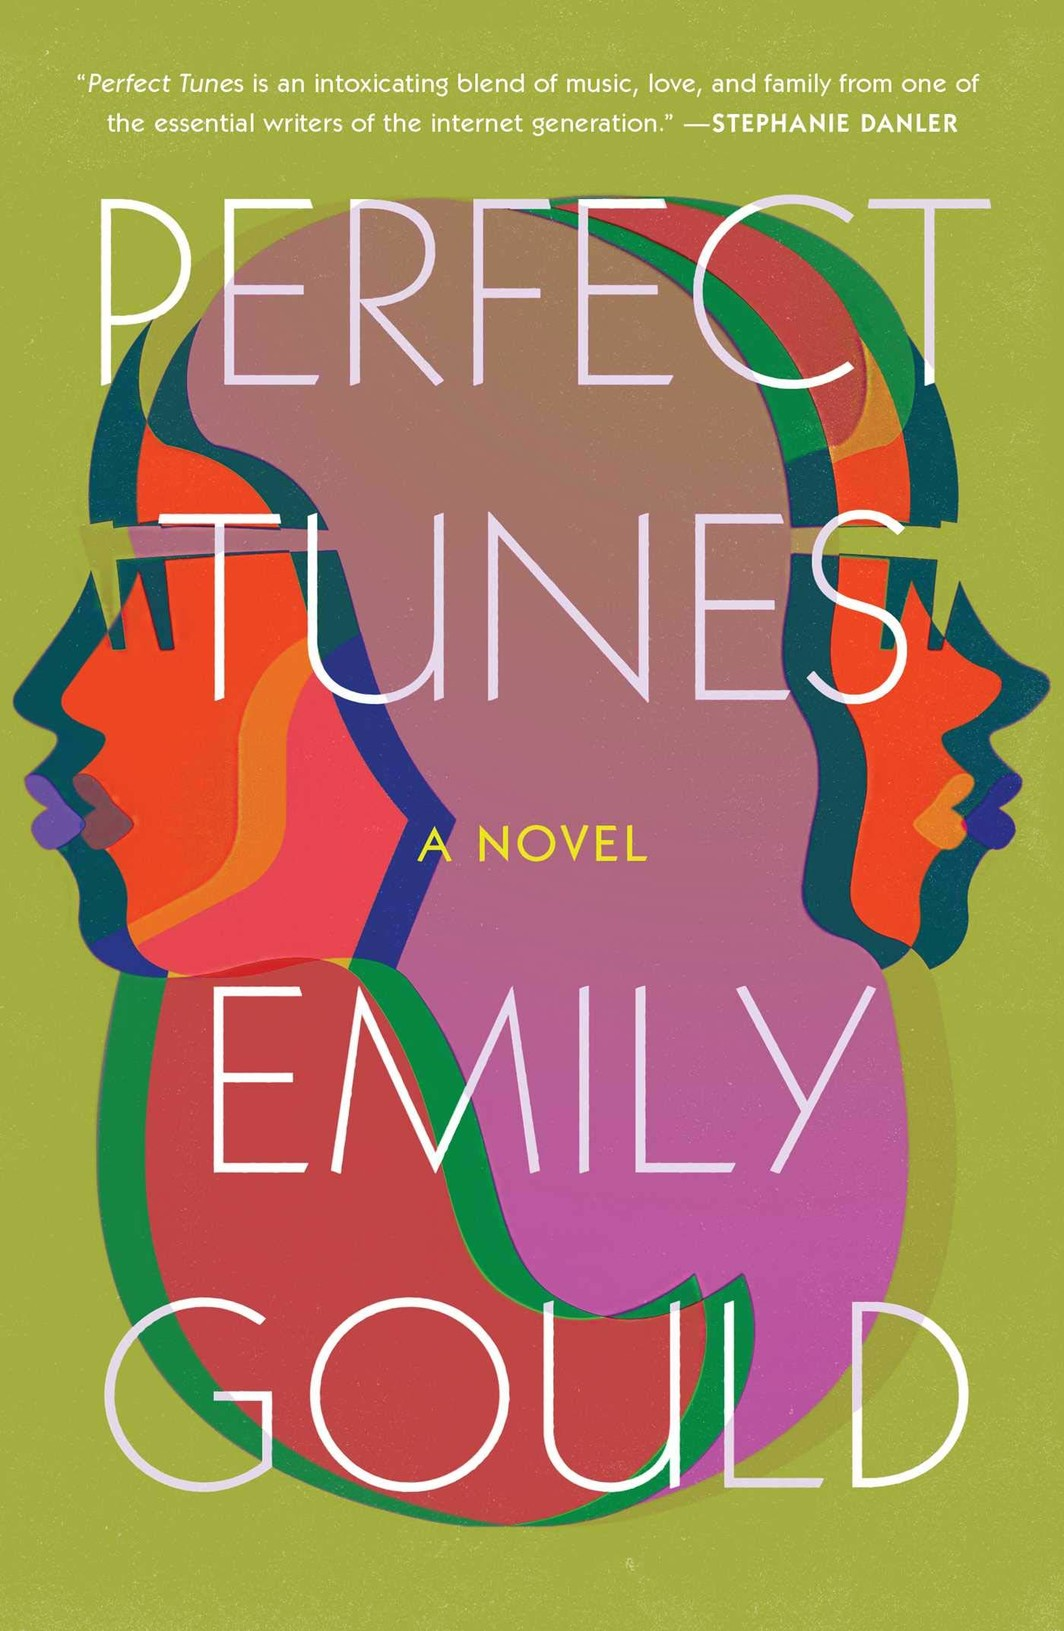 The cover of Perfect Tunes